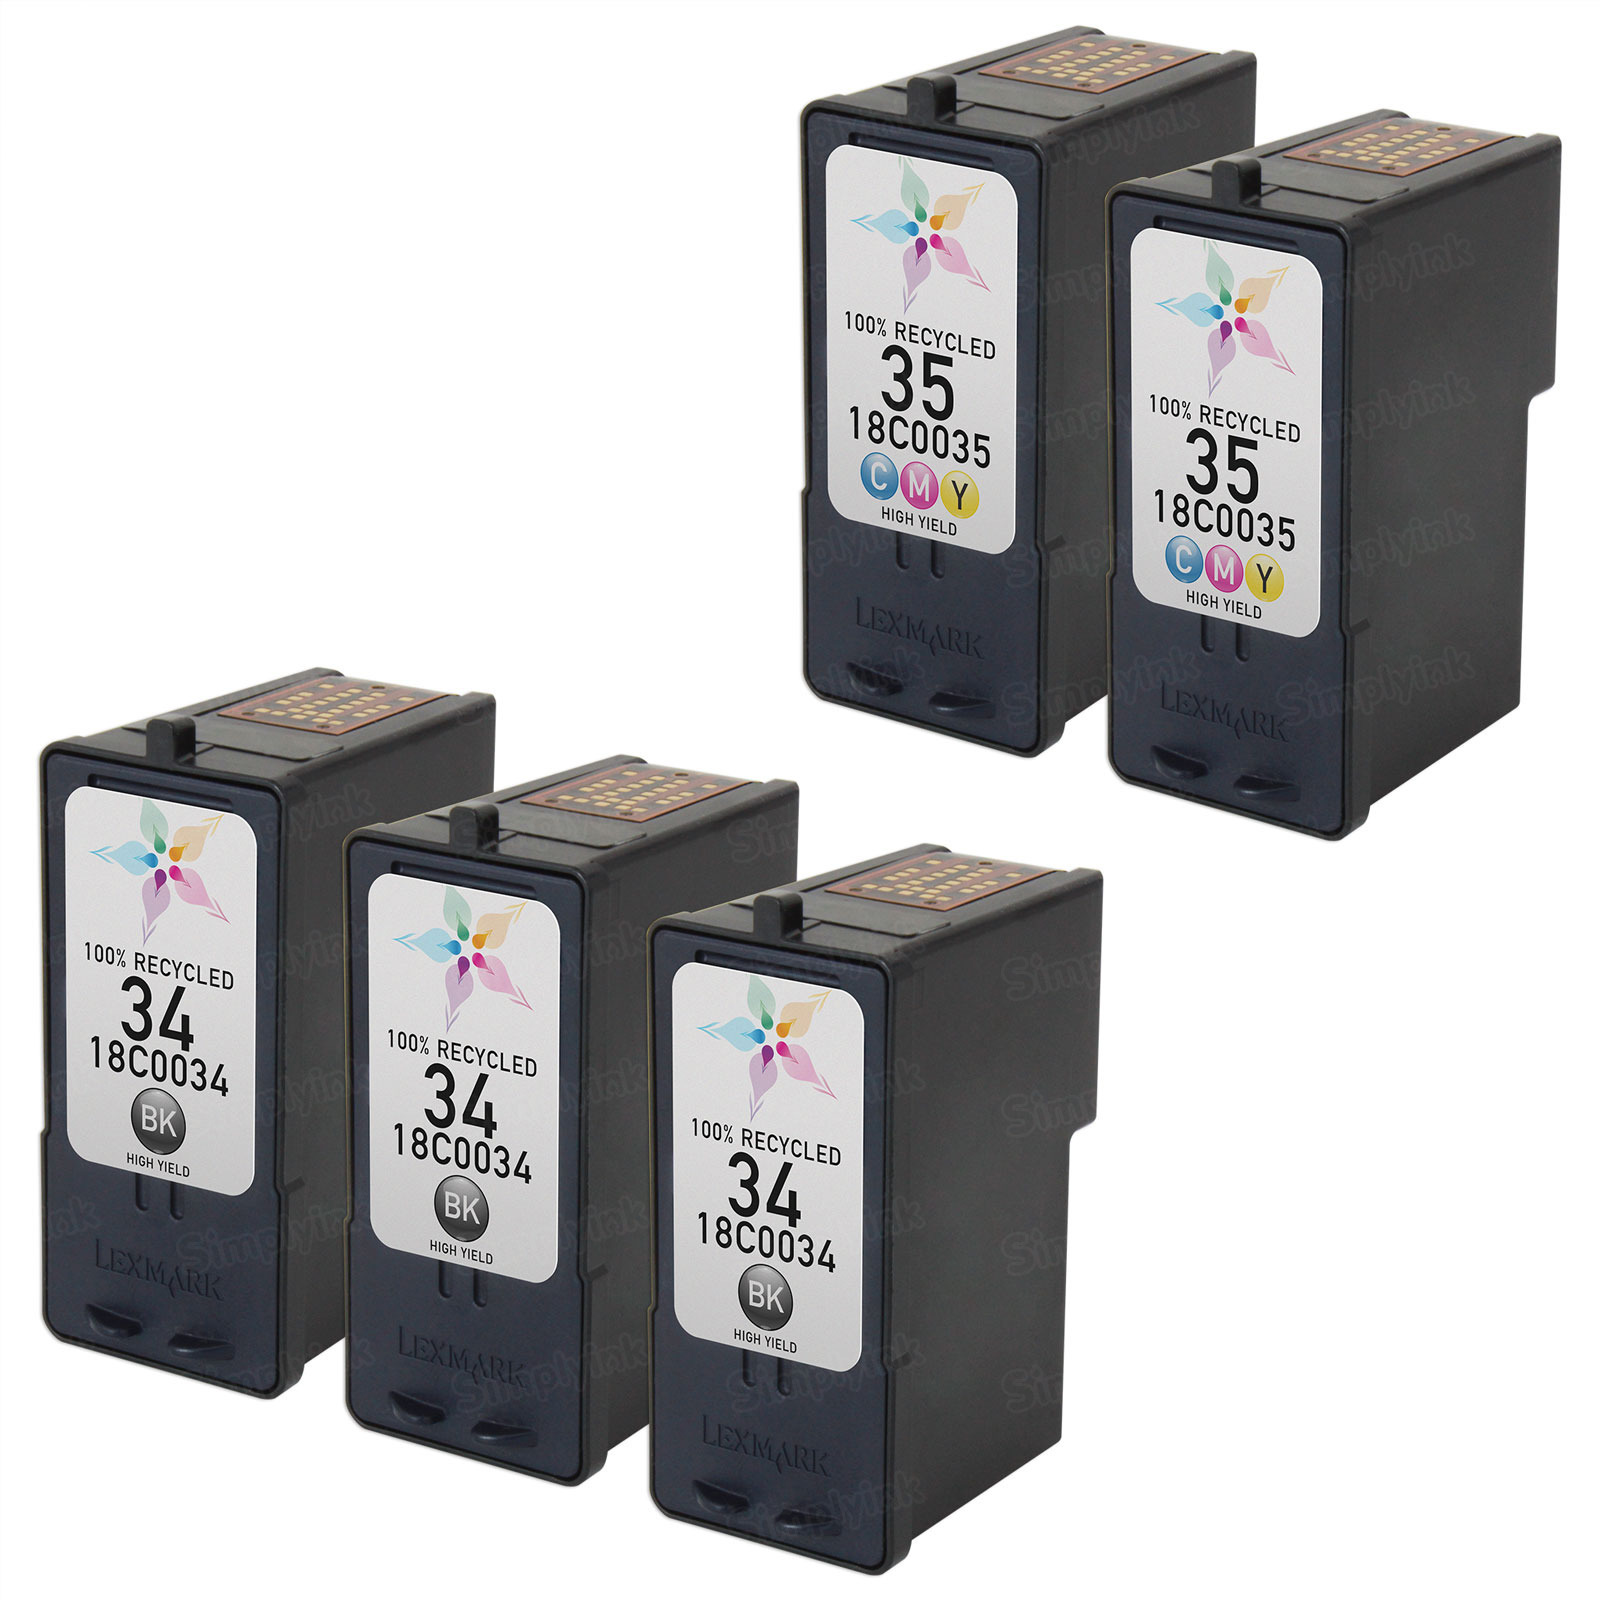 Inkjet Supplies for Lexmark Printers - Remanufactured Bulk Set of 5 Ink Cartridges 3 Black Lexmark 34 (18C0034) and 2 Color Lexmark 35 (18C0035)